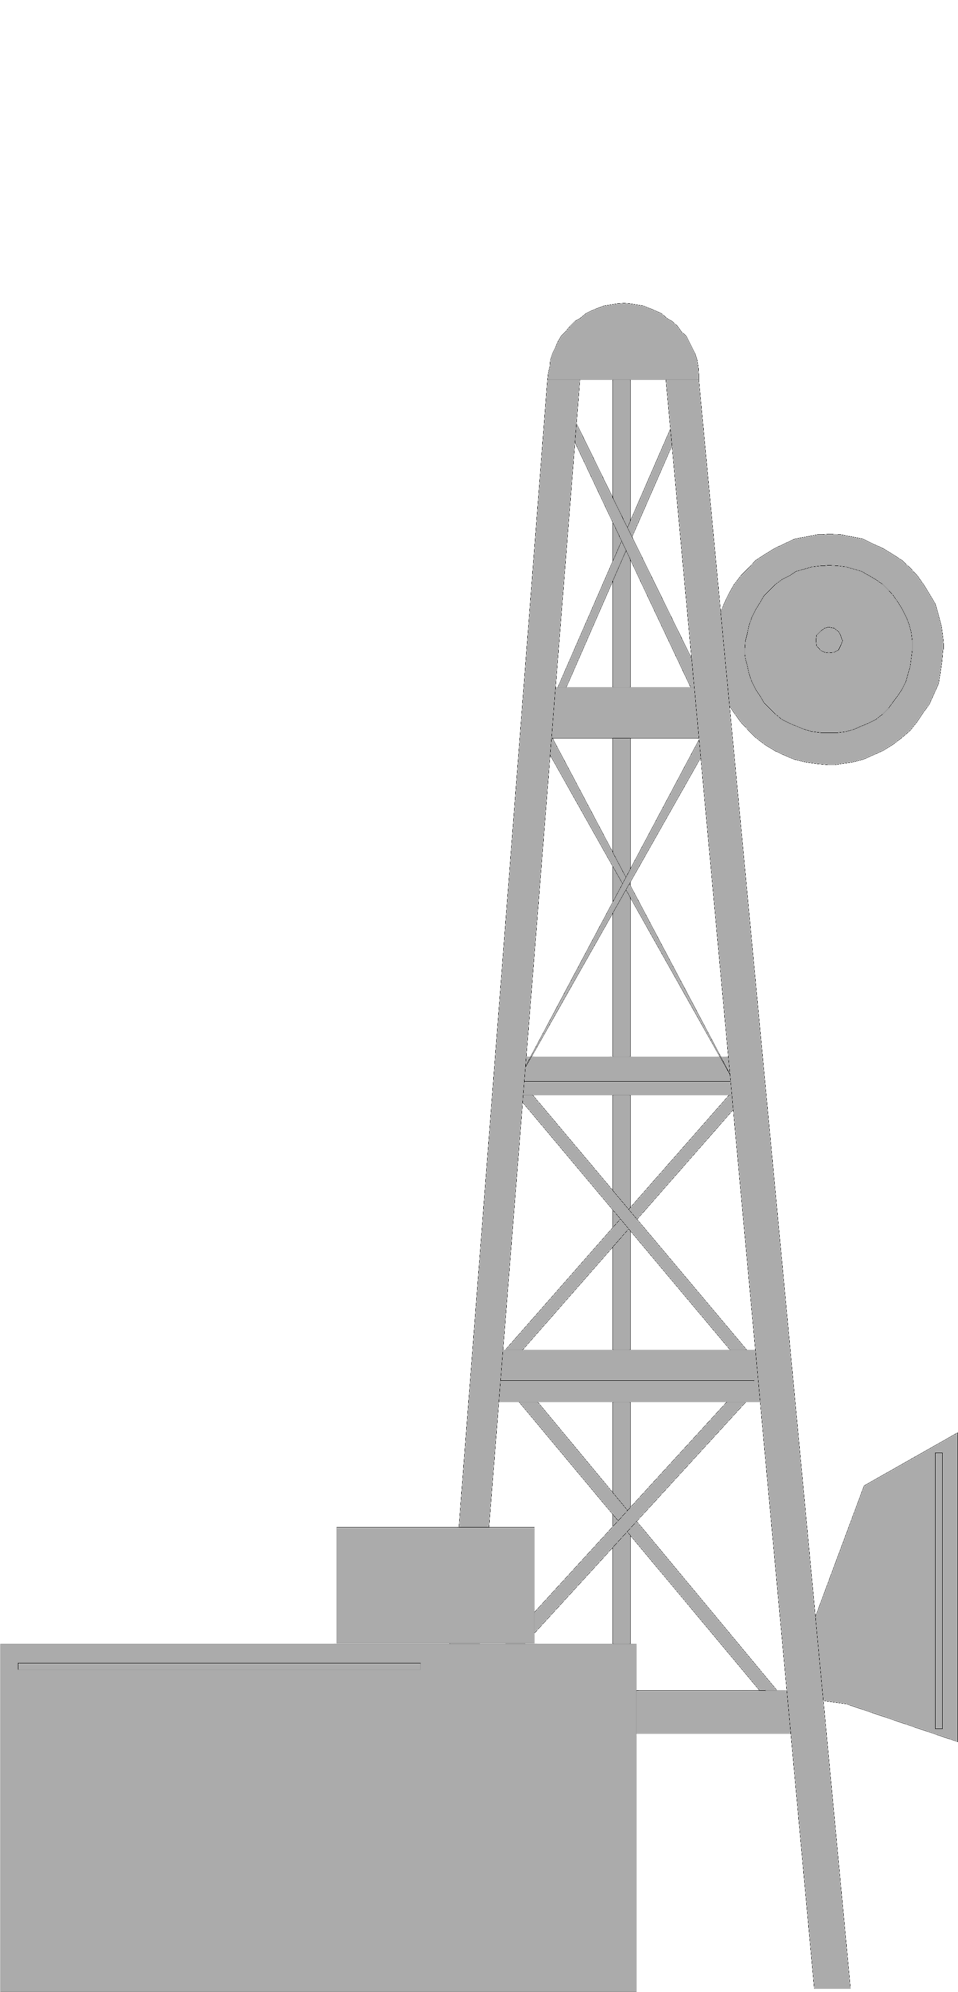 Illustration of a gray microwave tower : Free Stock Photo